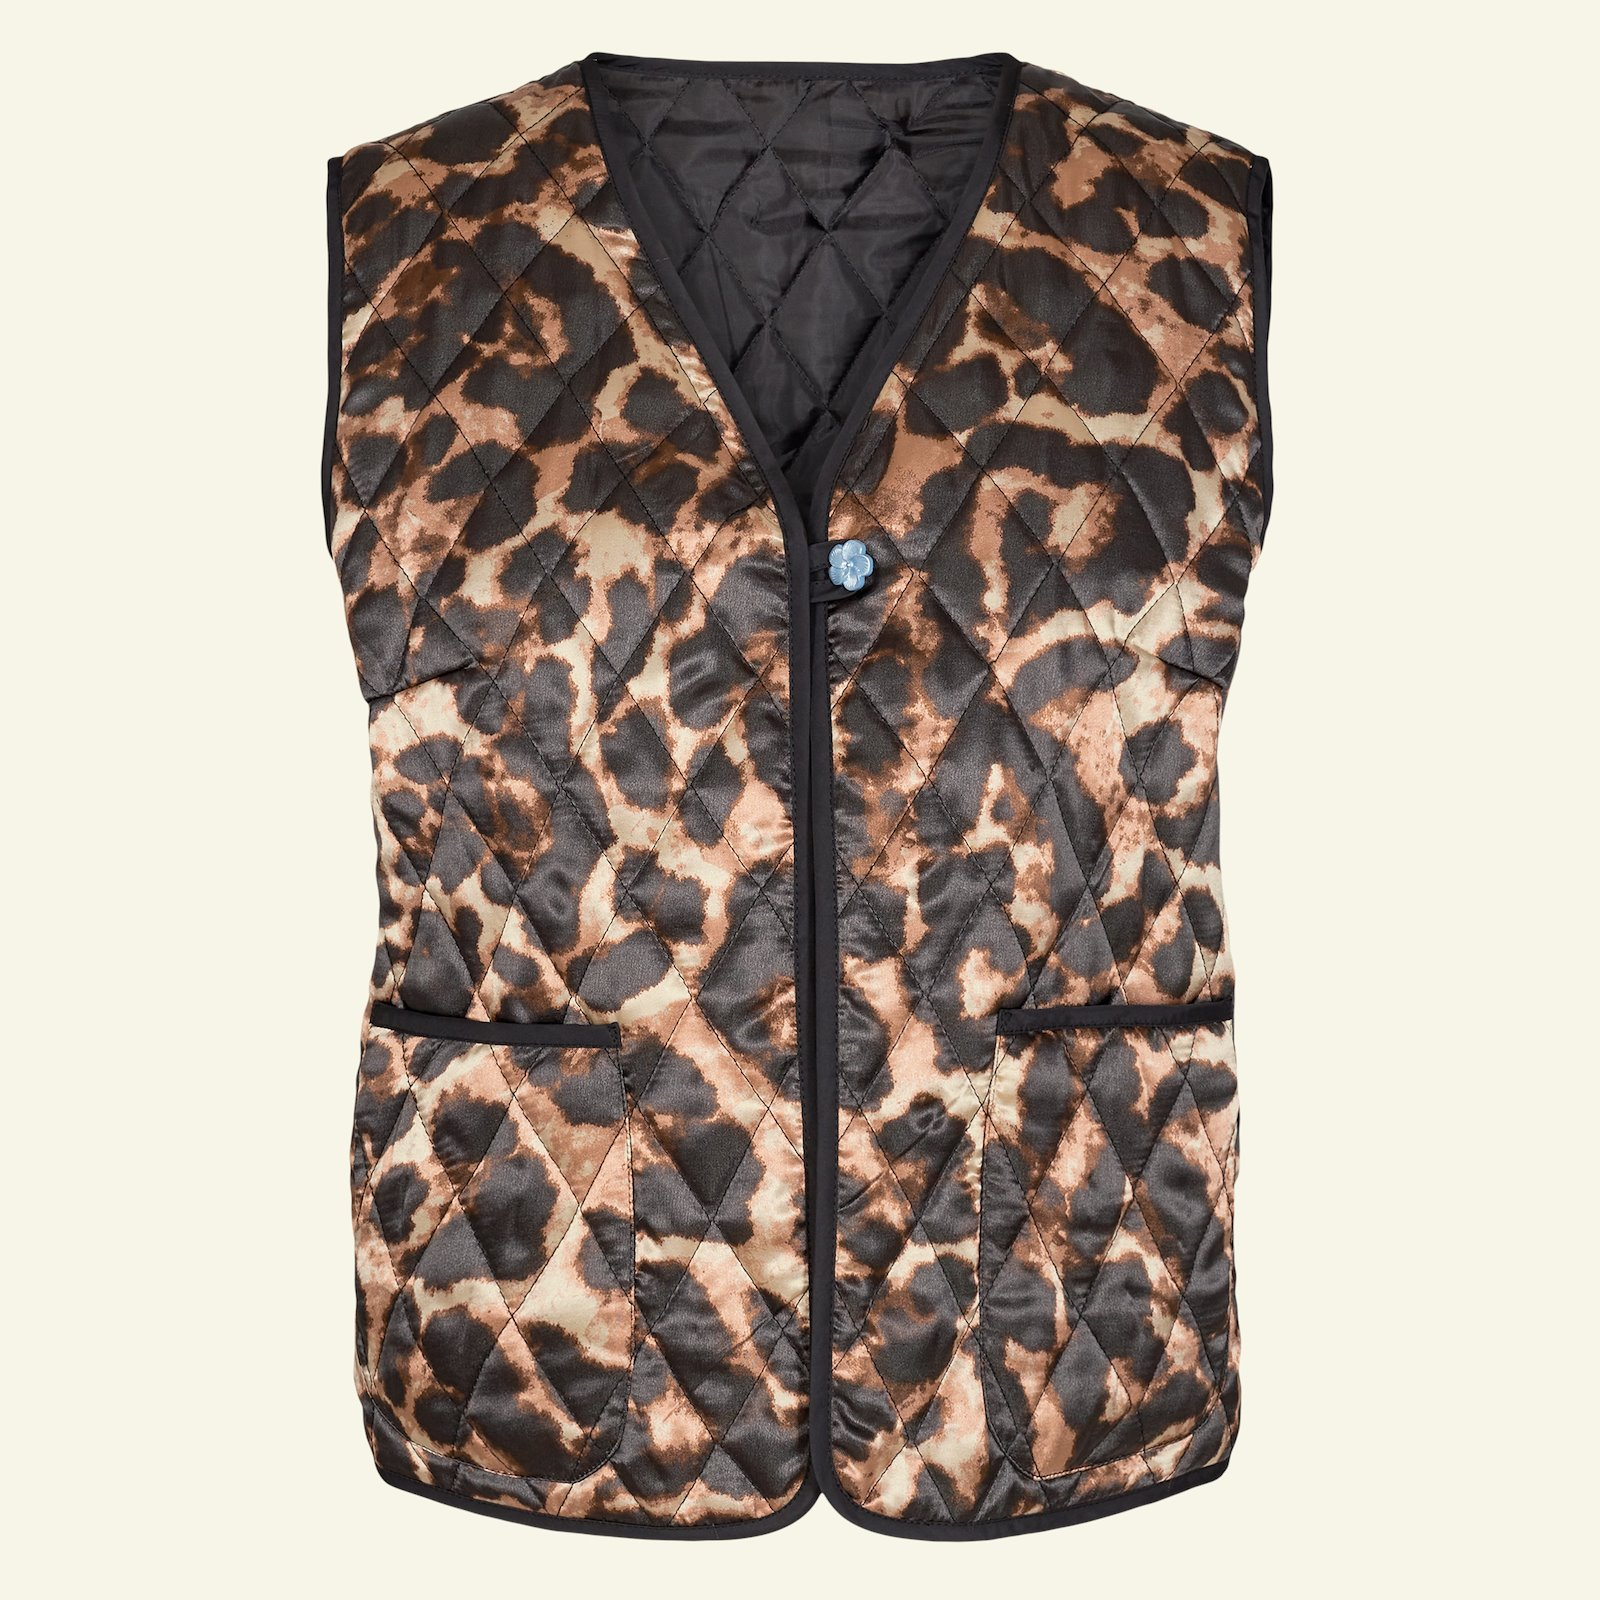 Quilted jacket and waistcoat, 34/6 p24047_920226_64080_sskit